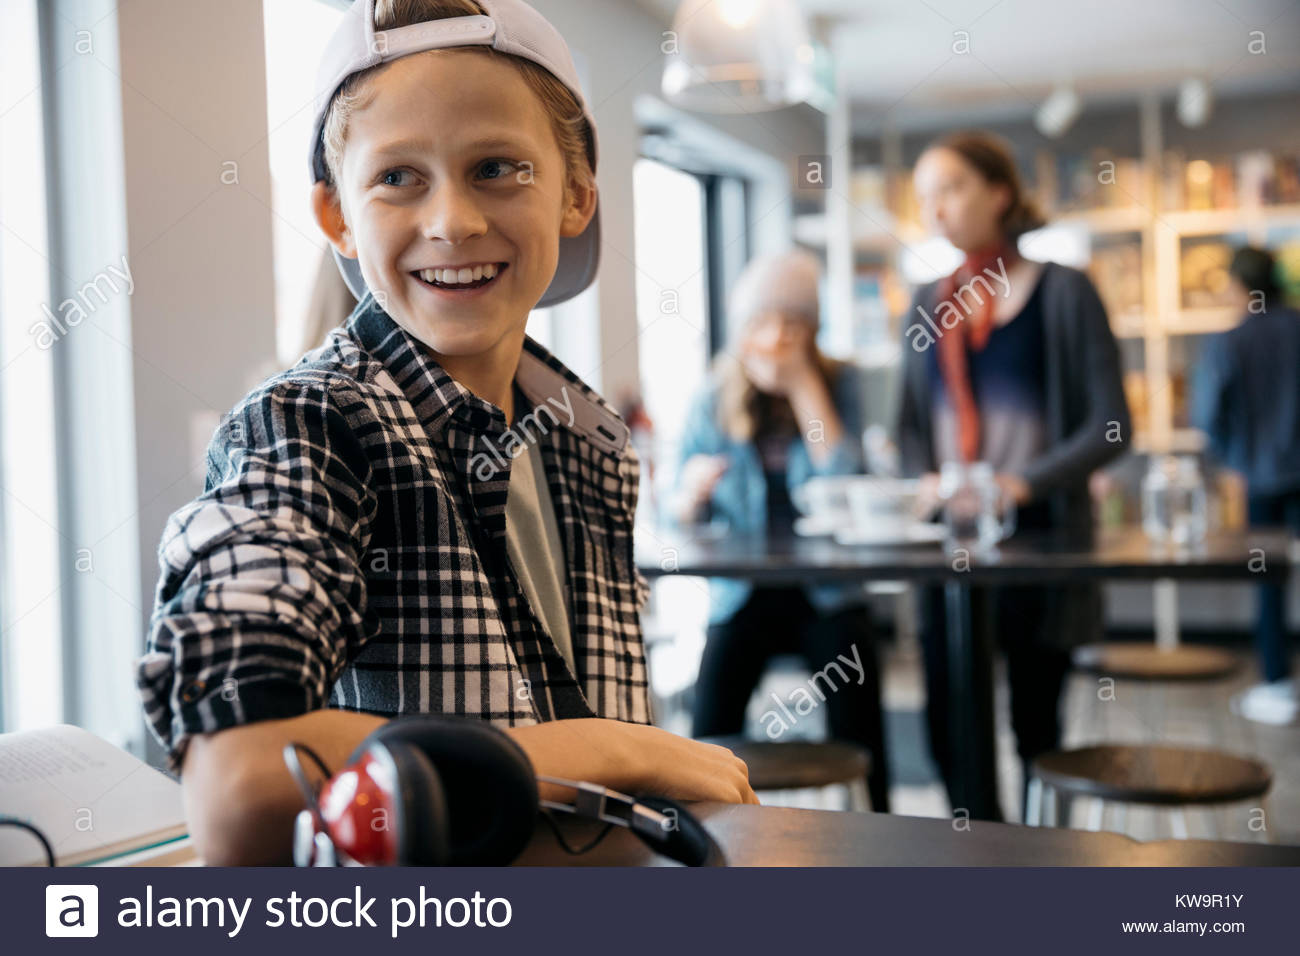 Smiling Caucasian high school boy student looking away in cafe - Stock Image